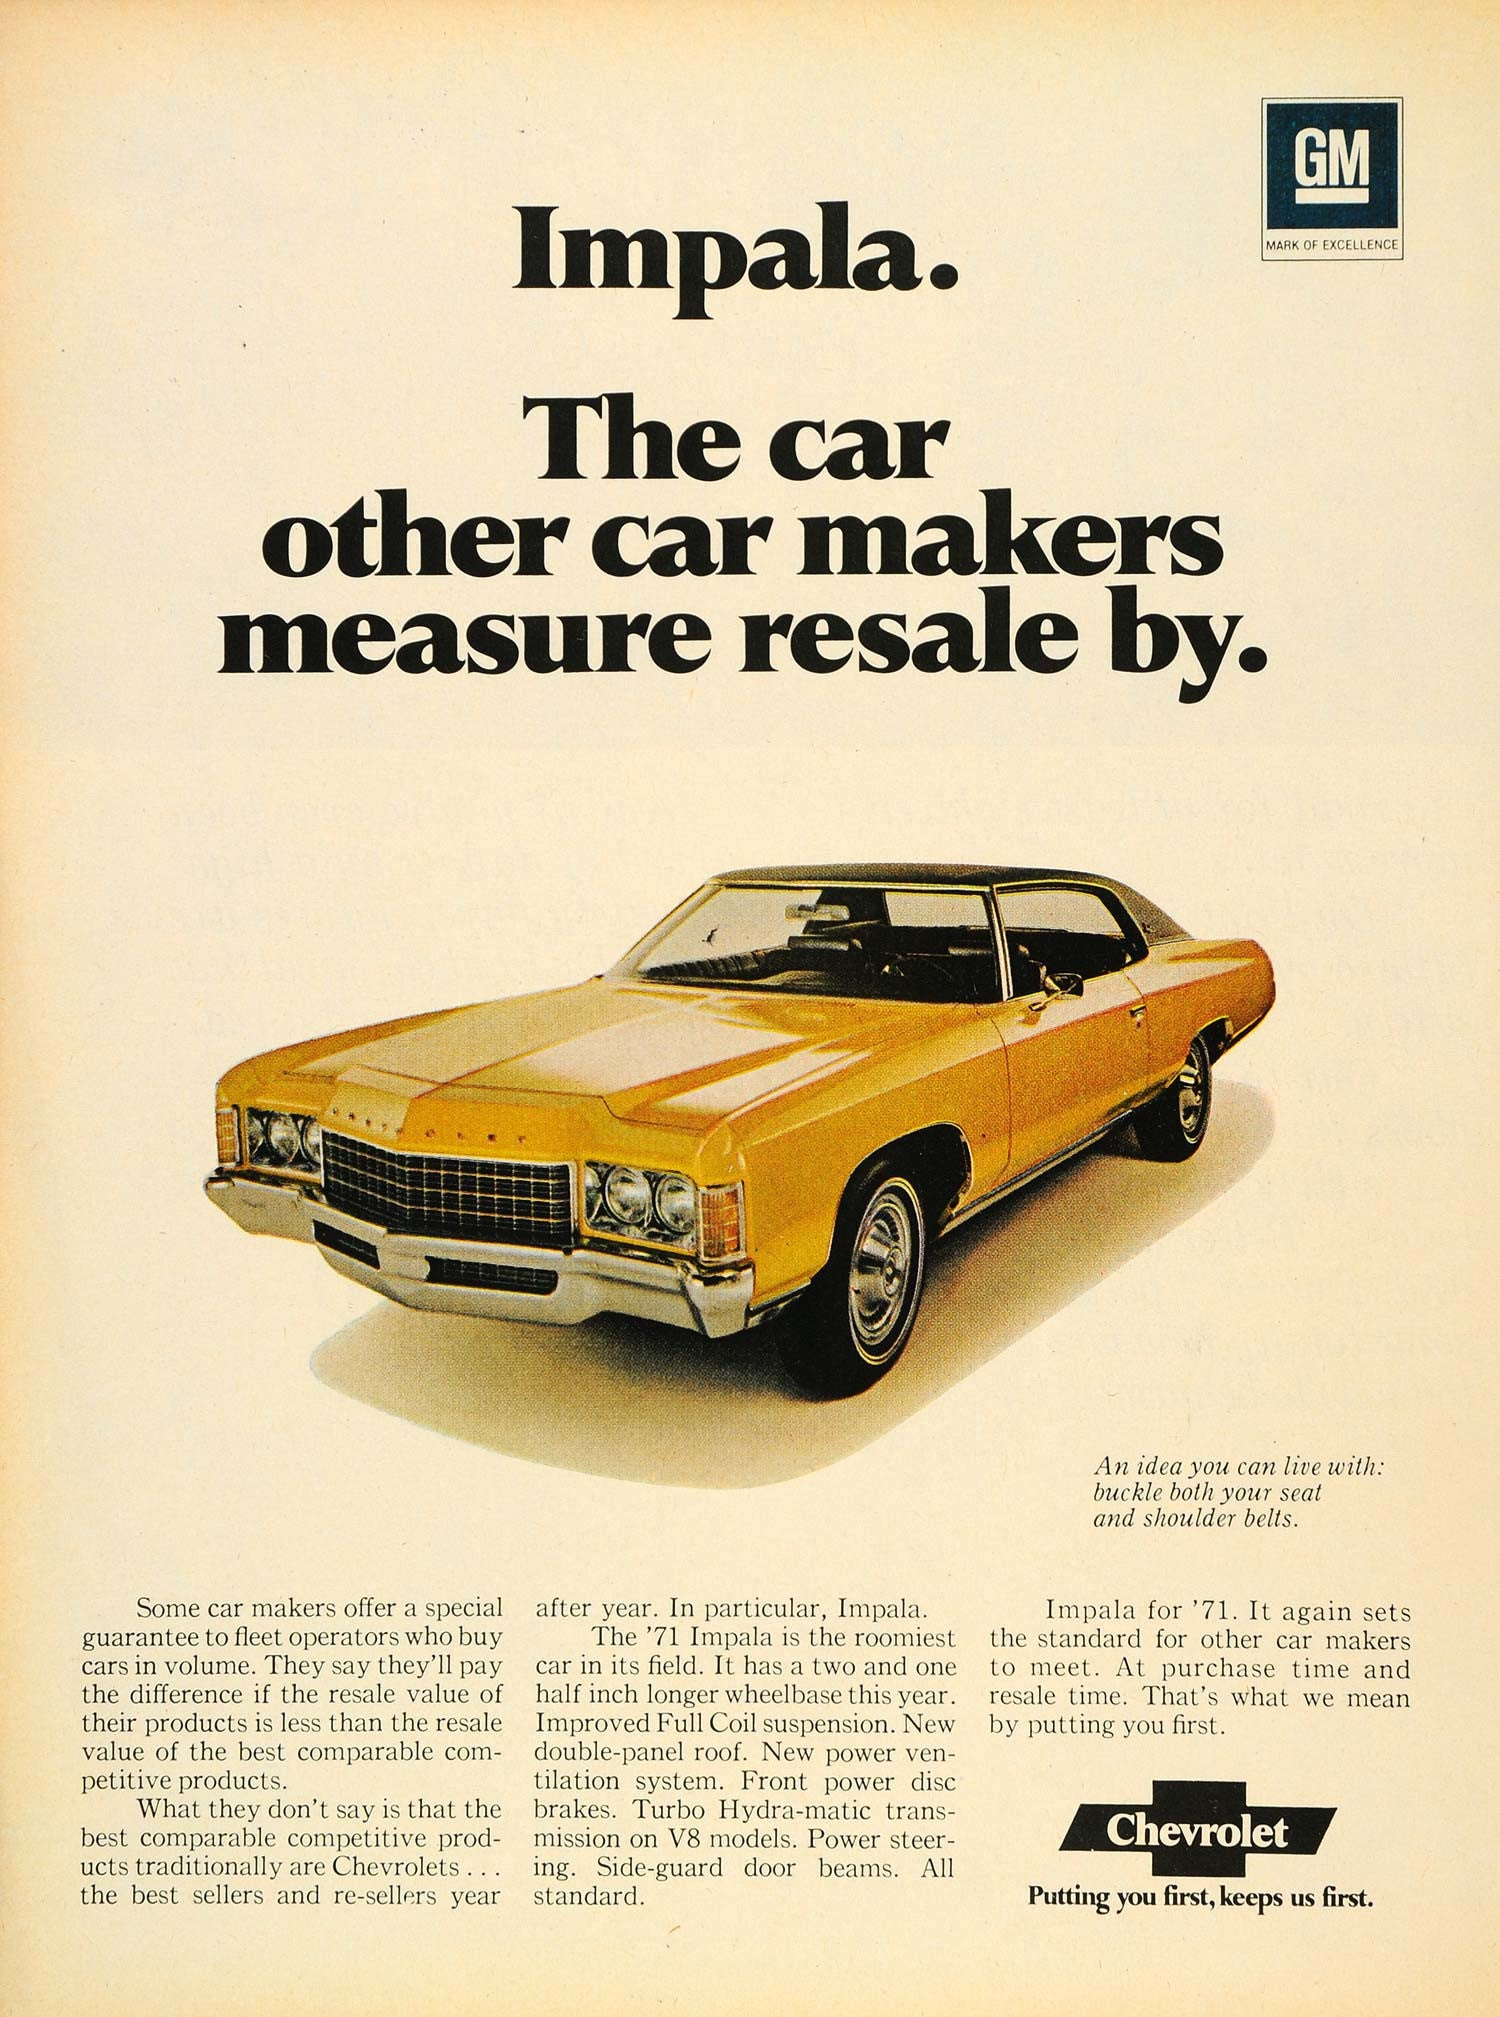 1971 Ad Yellow Chevrolet Impala Turbo Hydra-matic V8 - ORIGINAL CARS7 - Period Paper